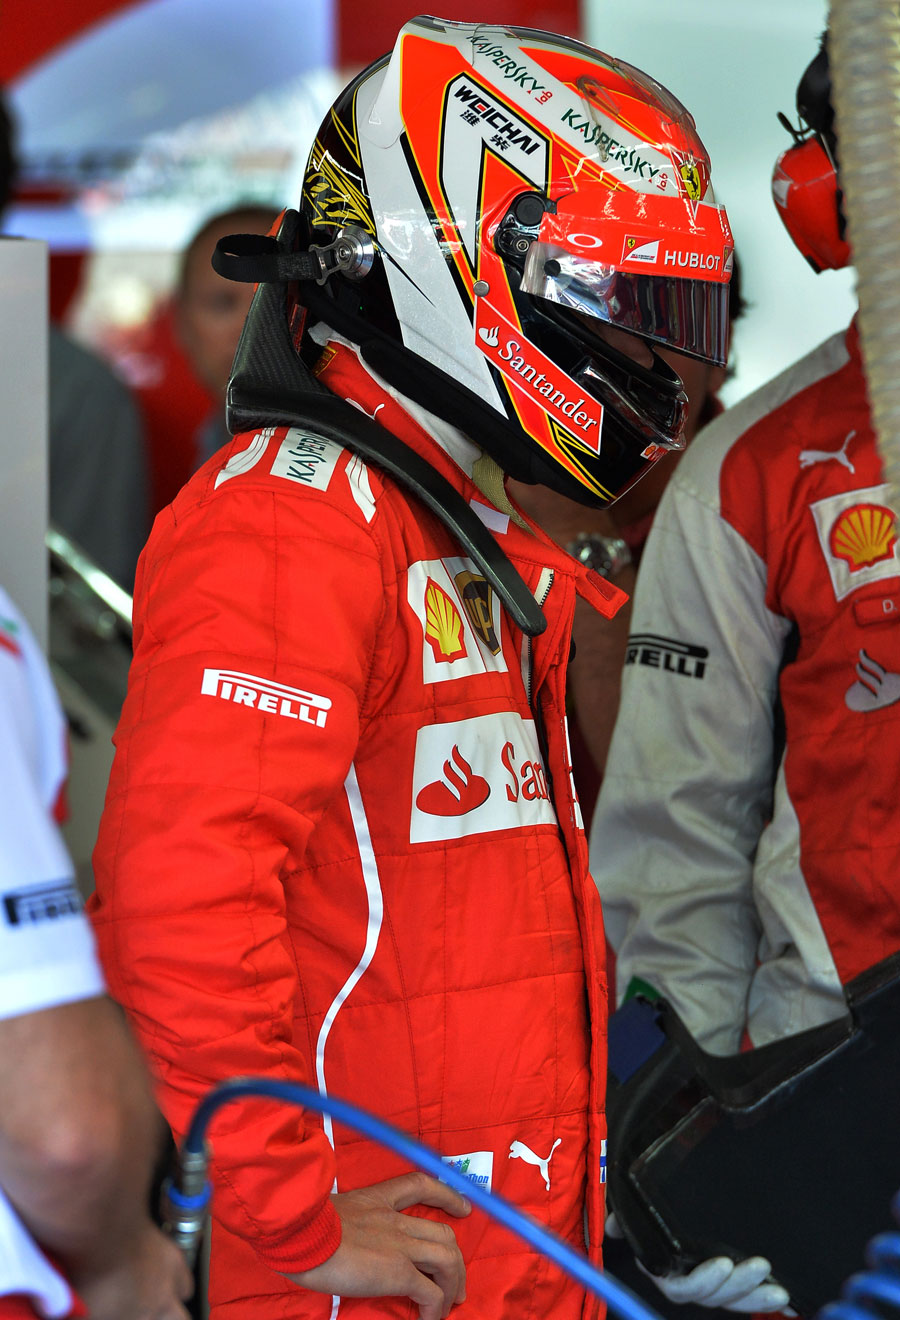 Kimi Raikkonen looks on in the Ferrari garage during qualifying